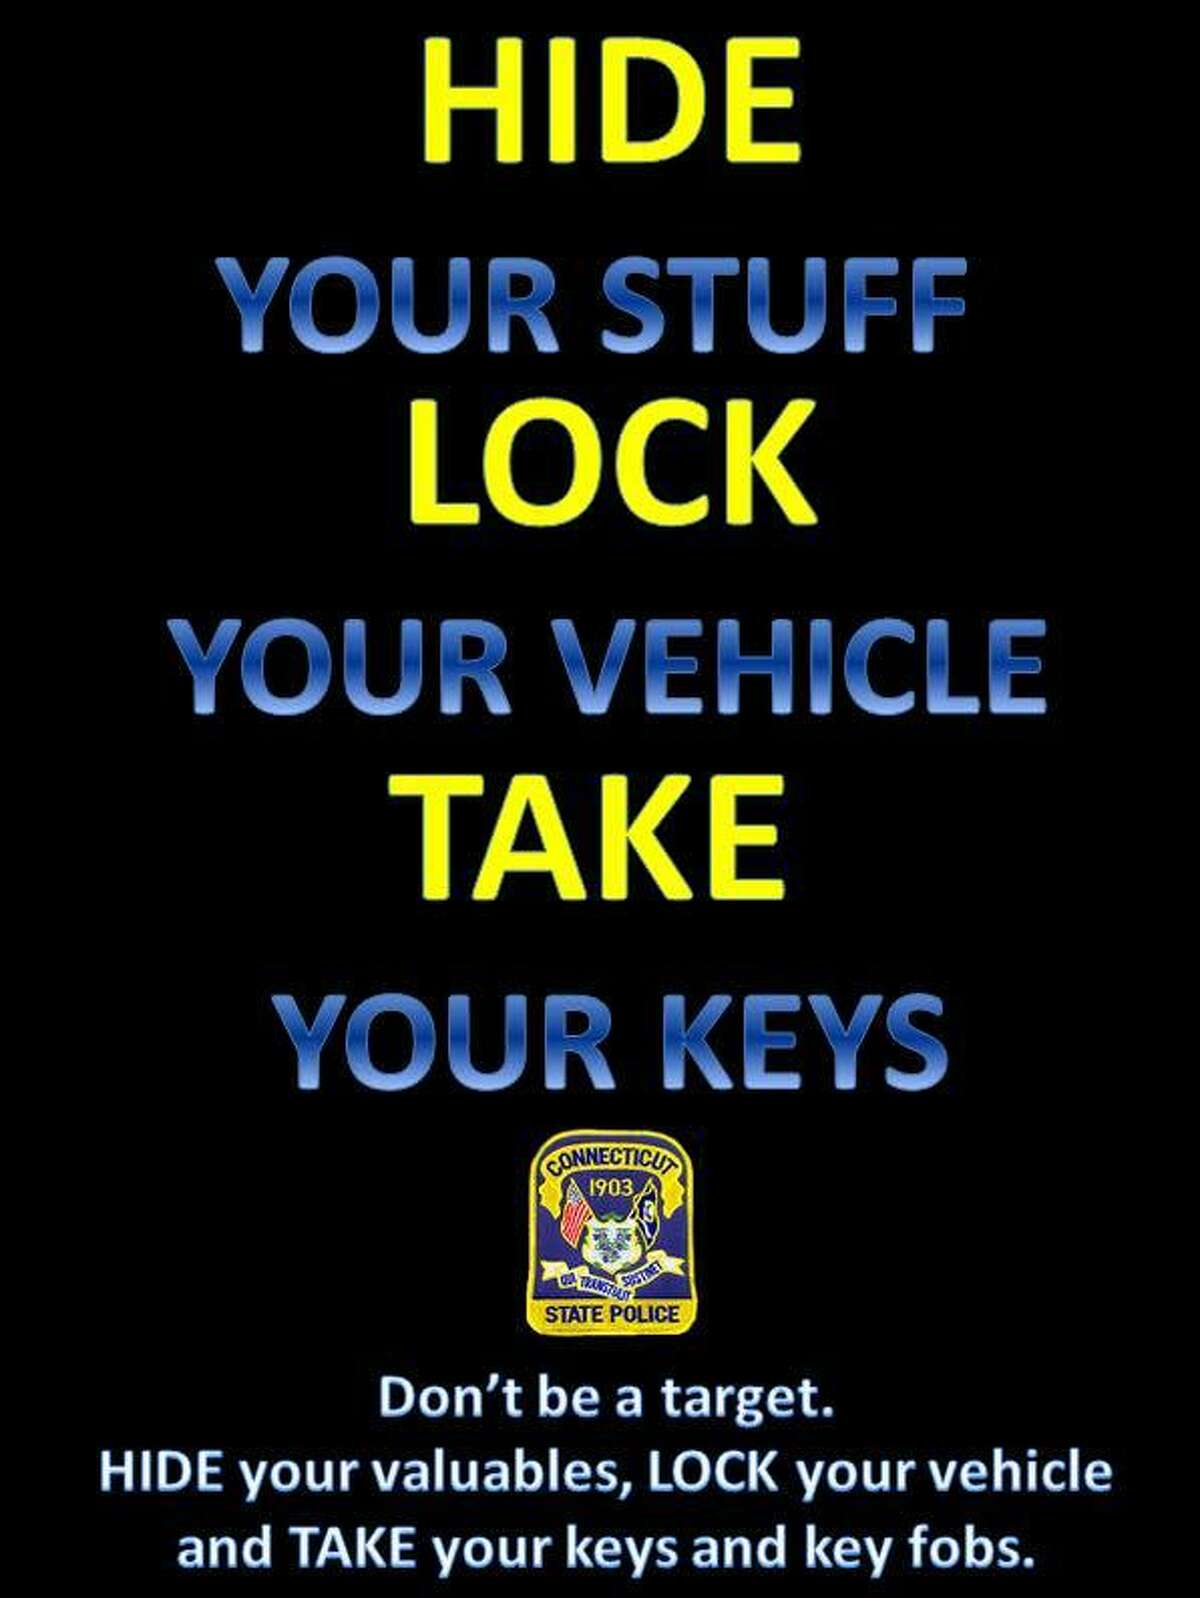 After a pursuit involving a stolen vehicle, state police are urging residents to lock their cars and not to leave their keys in their car.